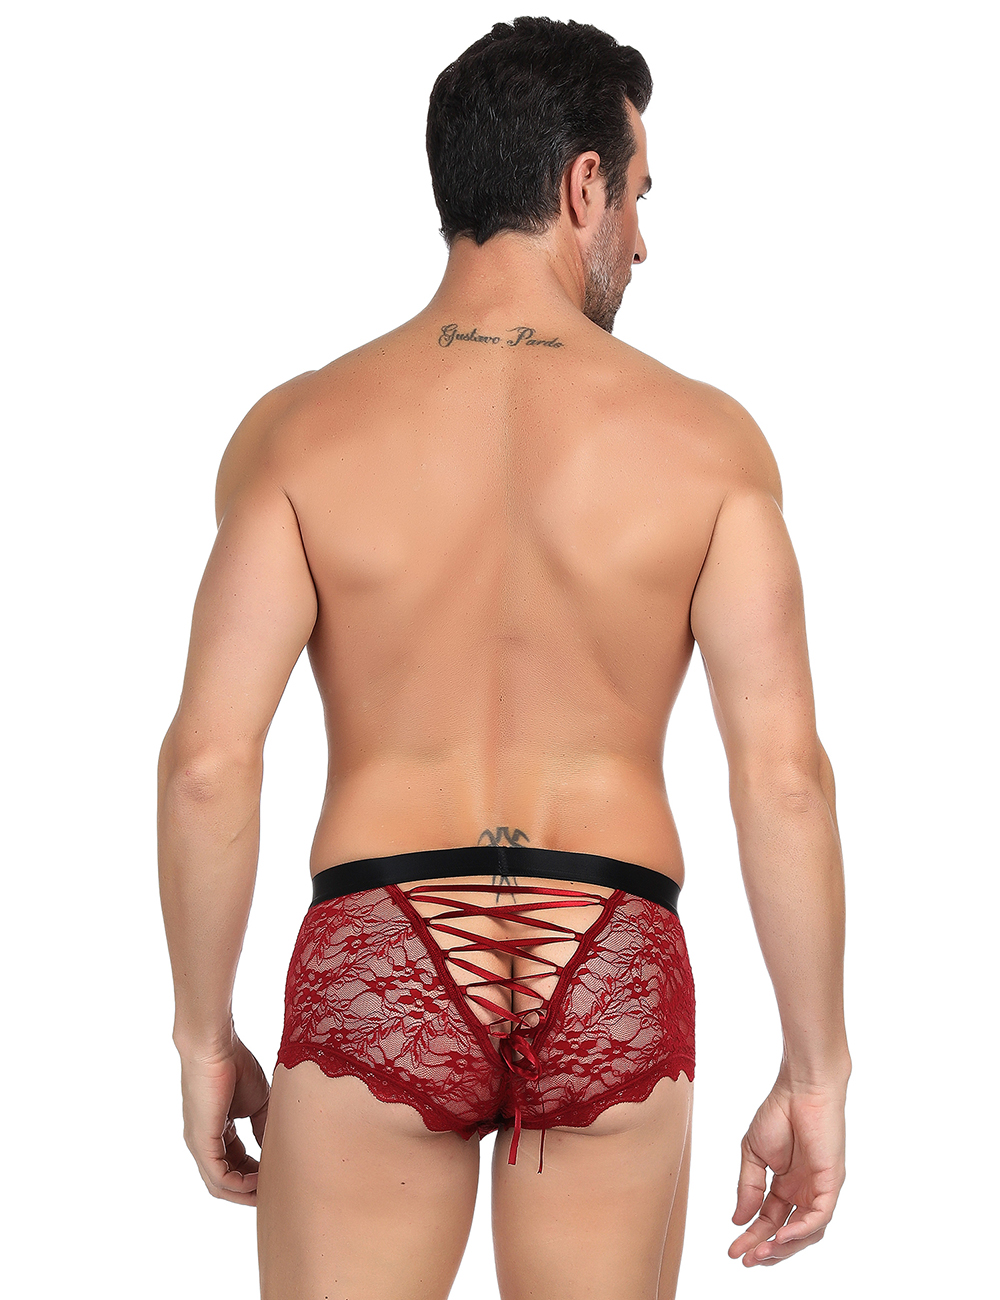 Men's lace underwear lace up back 11767 Edmonton